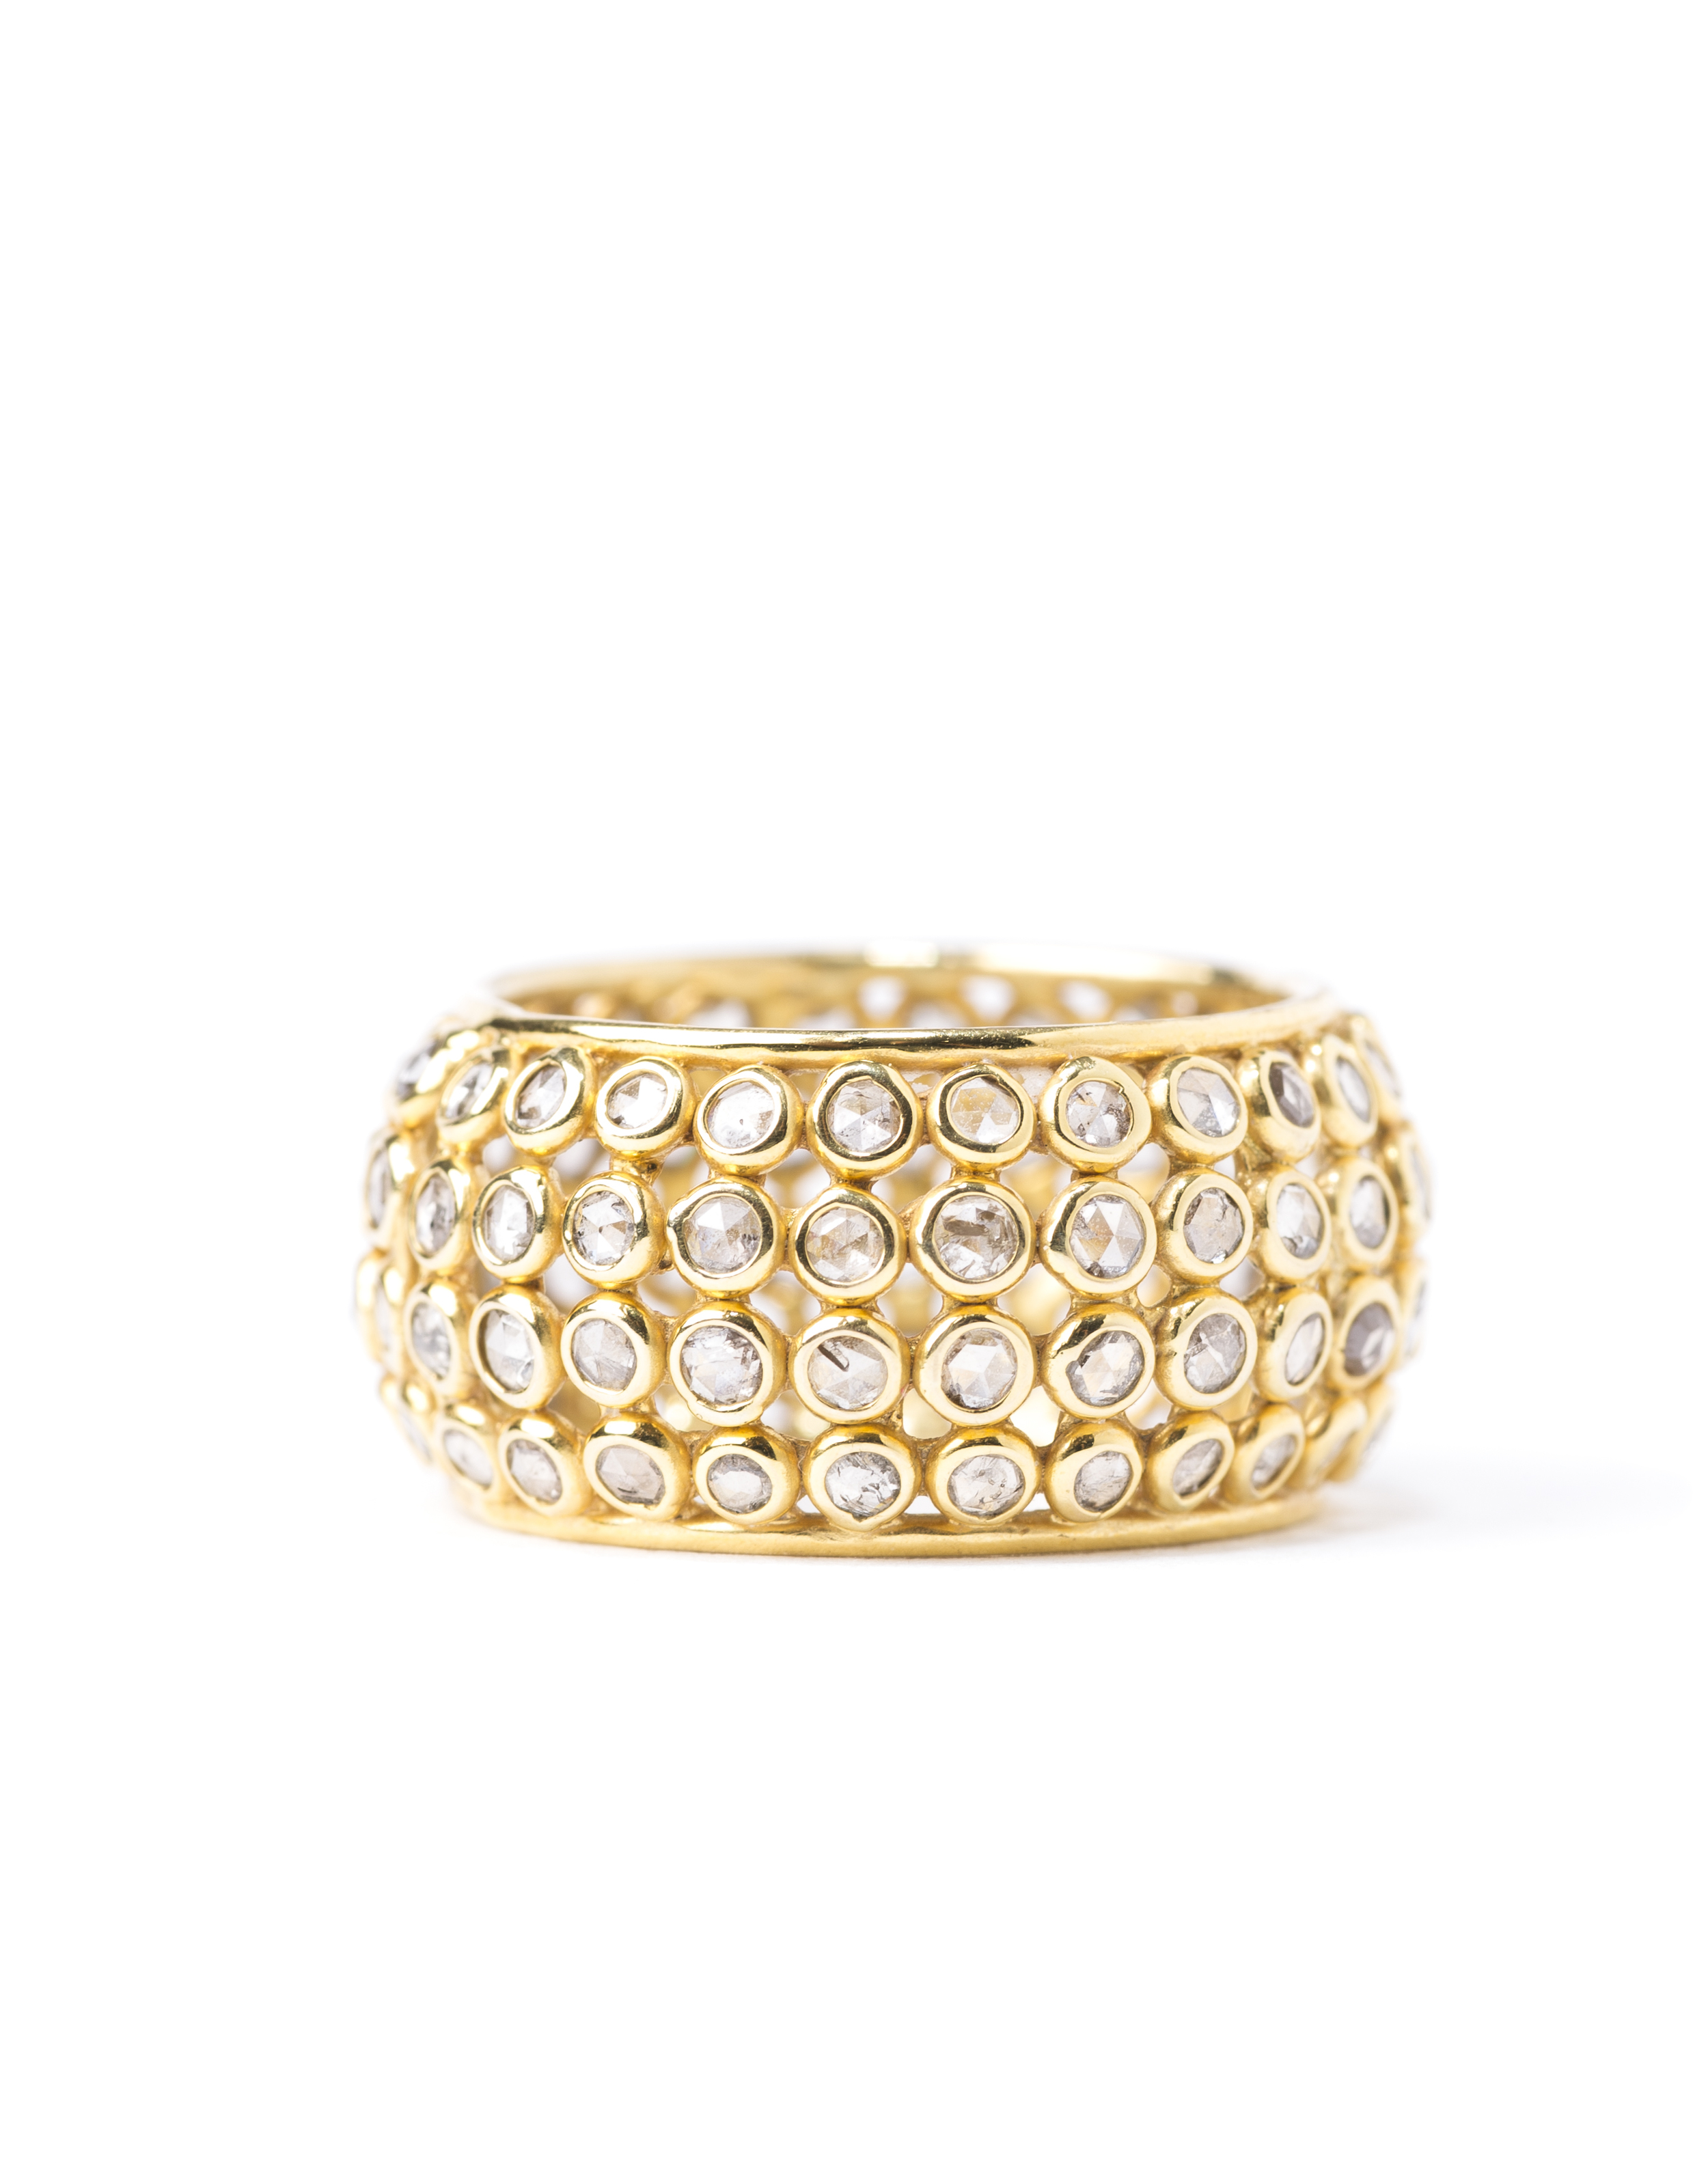 151 18k gold circles ring.jpg